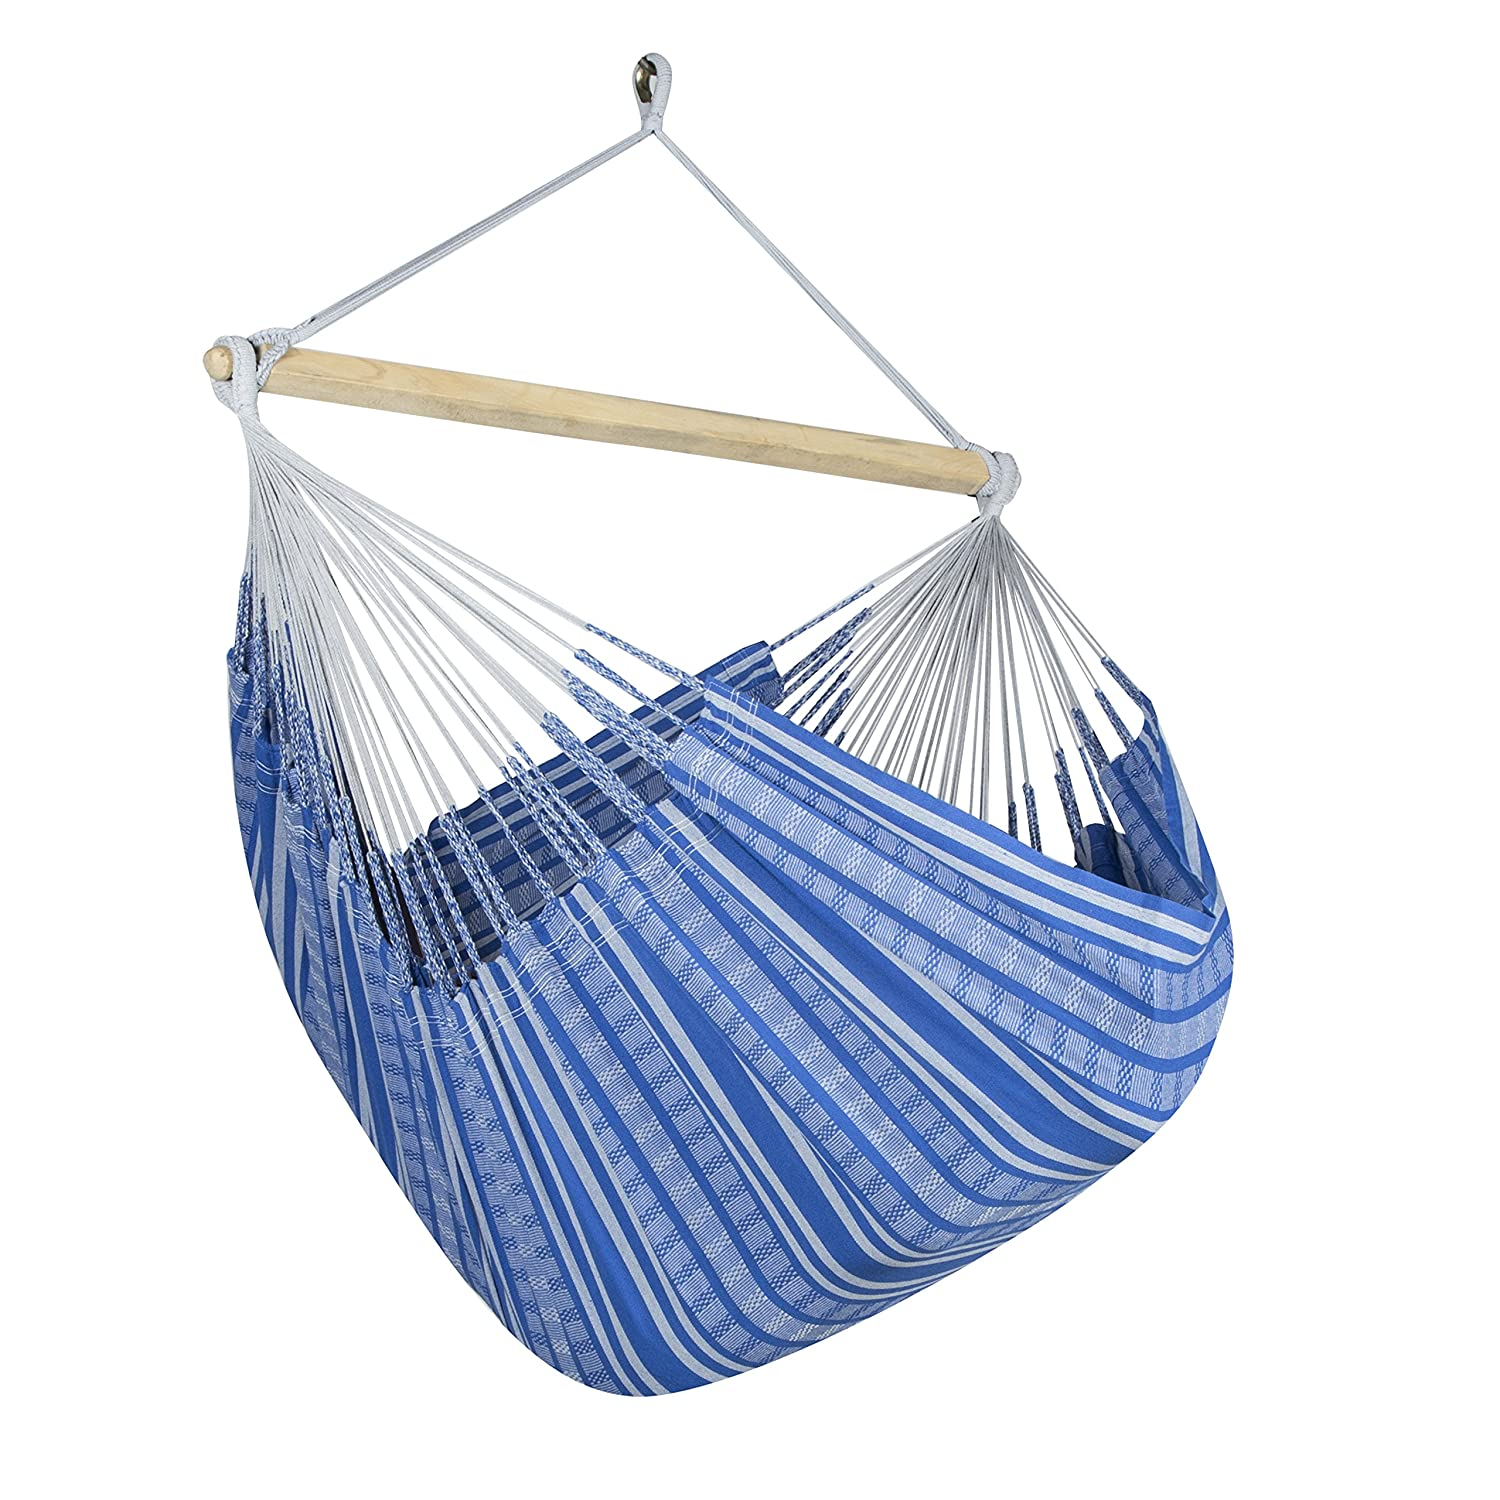 siesta quality la traditional hammock from colombia colombian artwork pin